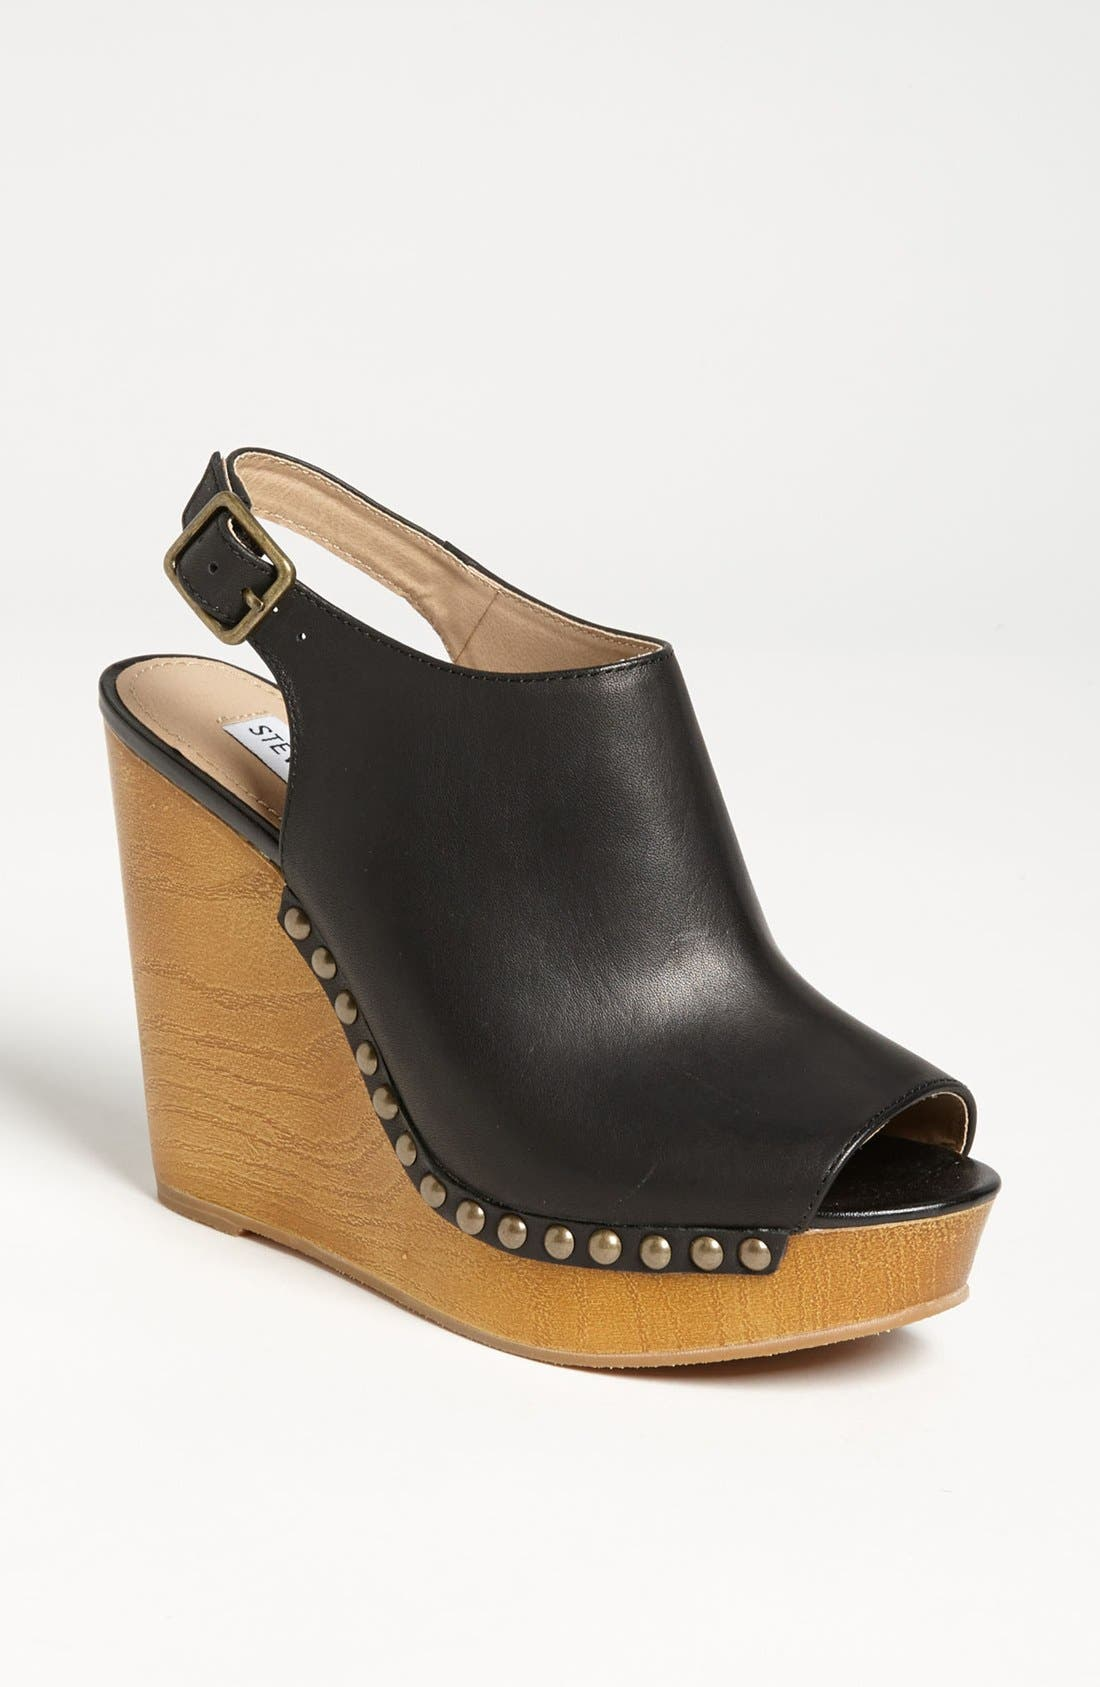 Alternate Image 1 Selected - Steve Madden 'Tryffle' Wedge Sandal